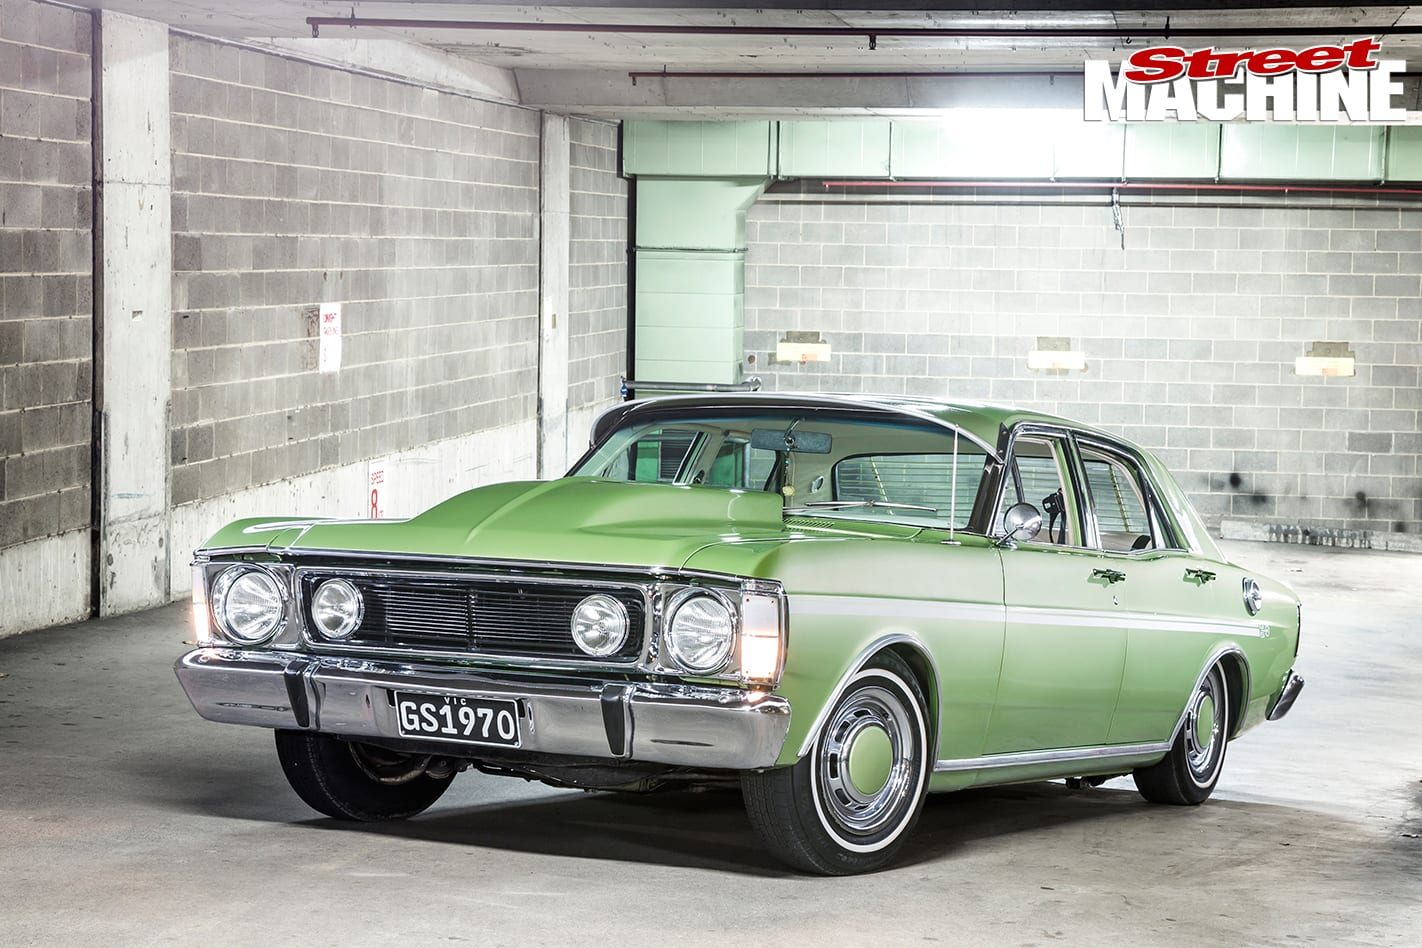 LS1-XW-Ford -Fairmont -GS-1